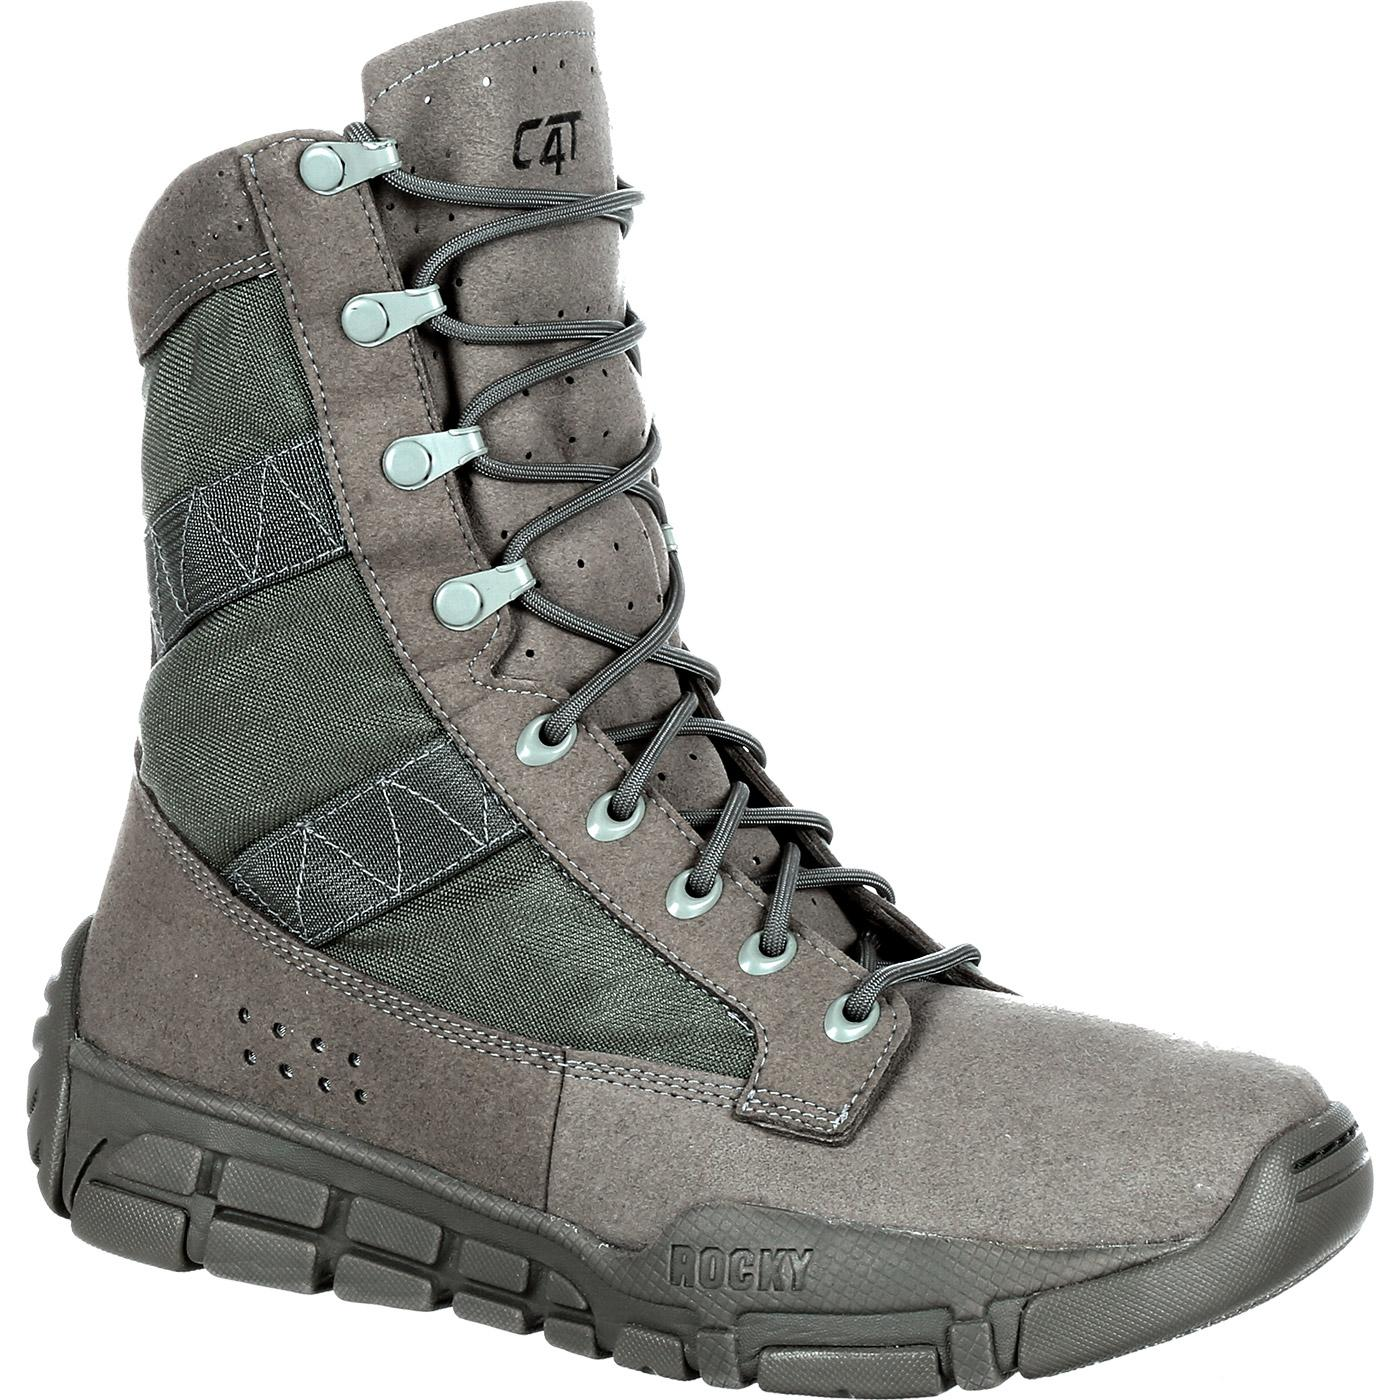 Lightweight Military Duty Boot Rocky C4t Trainer Fq0001073